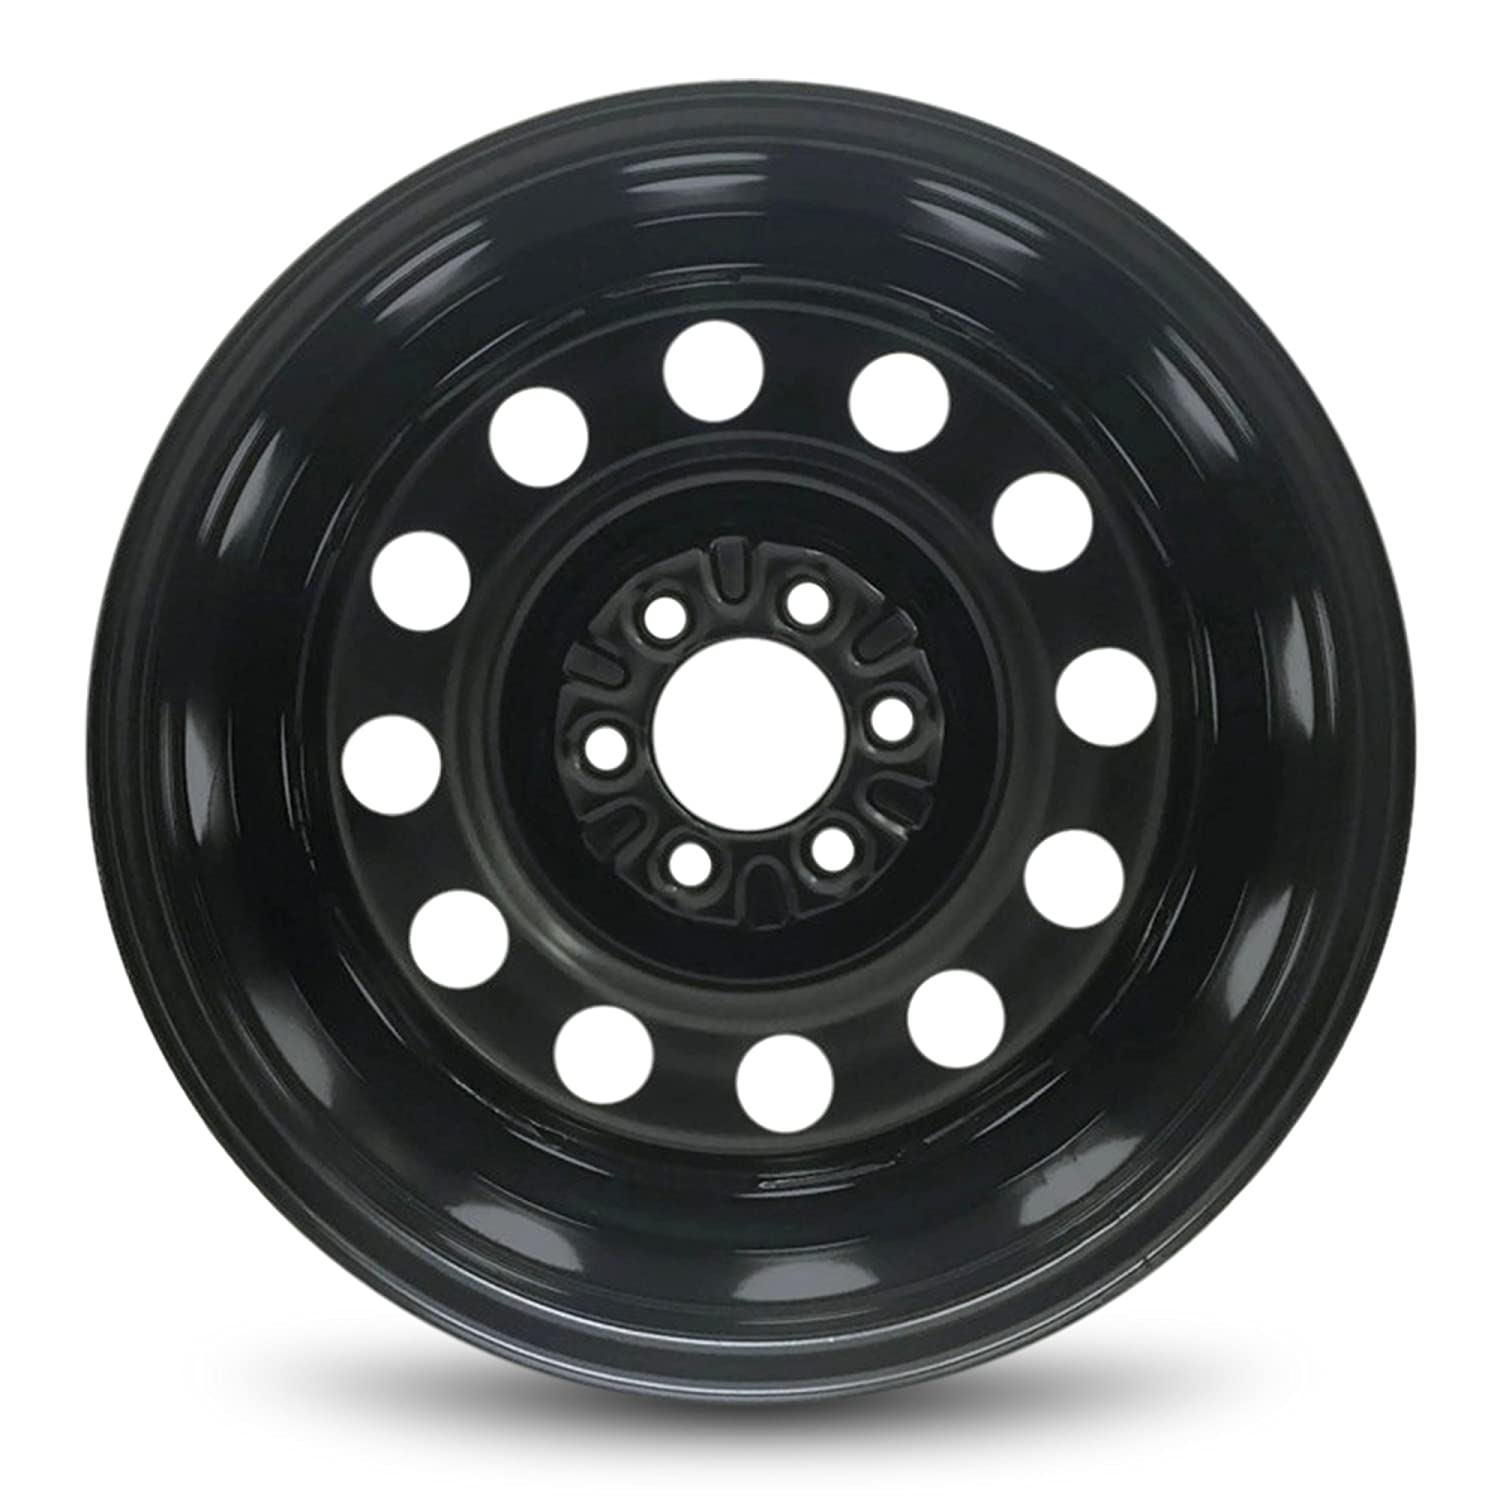 09 expedition tire size